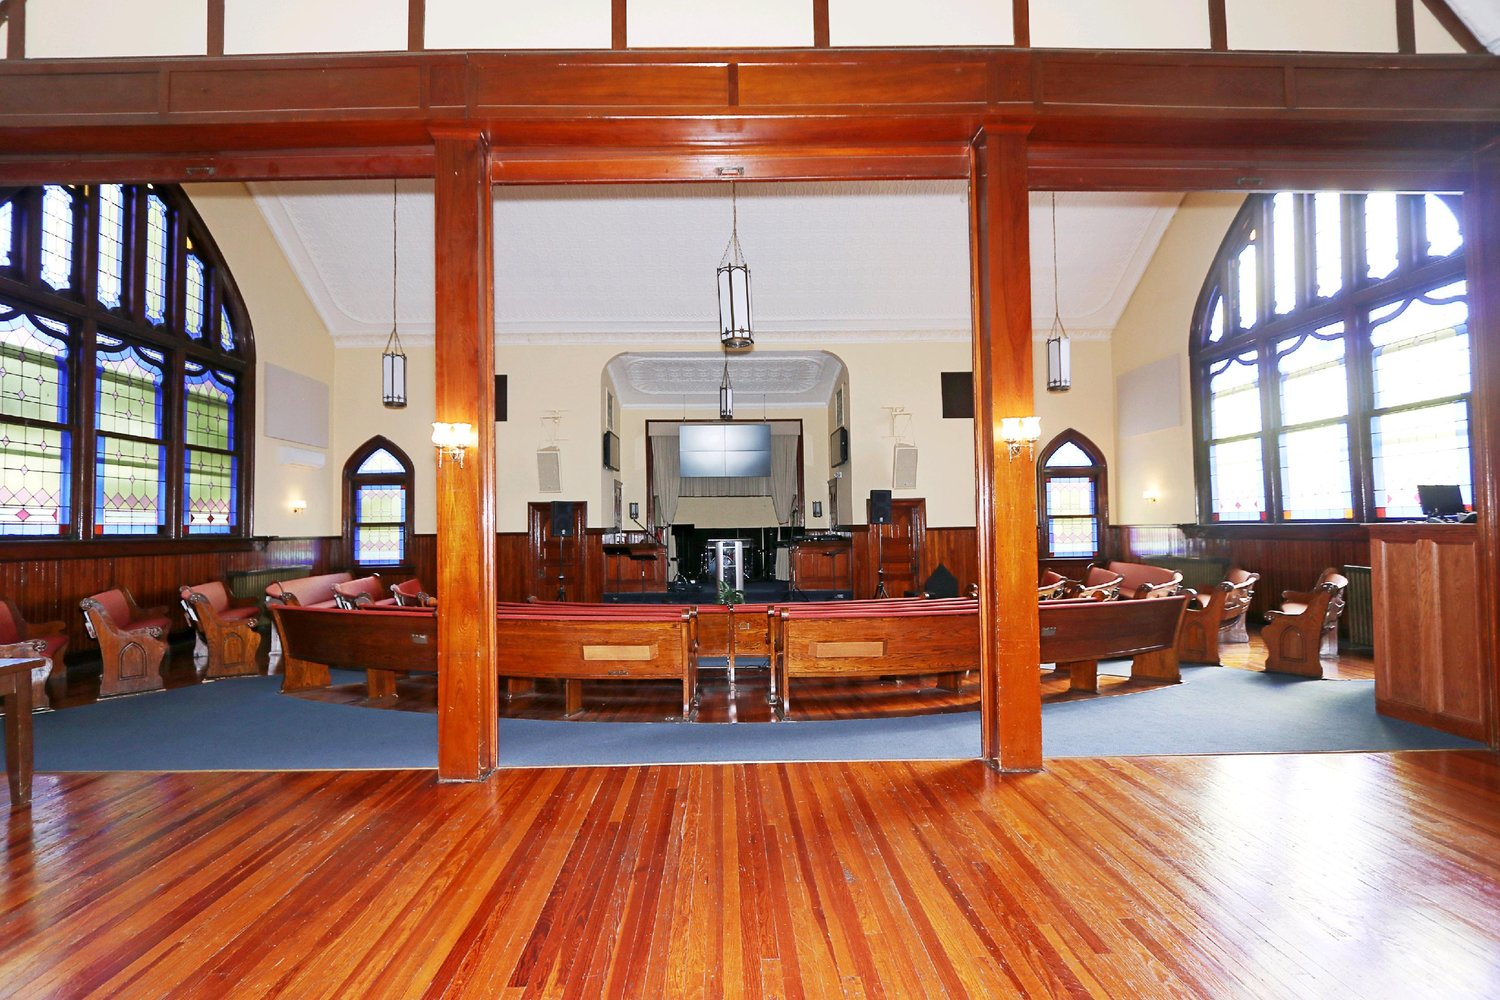 Edge City Church building interior